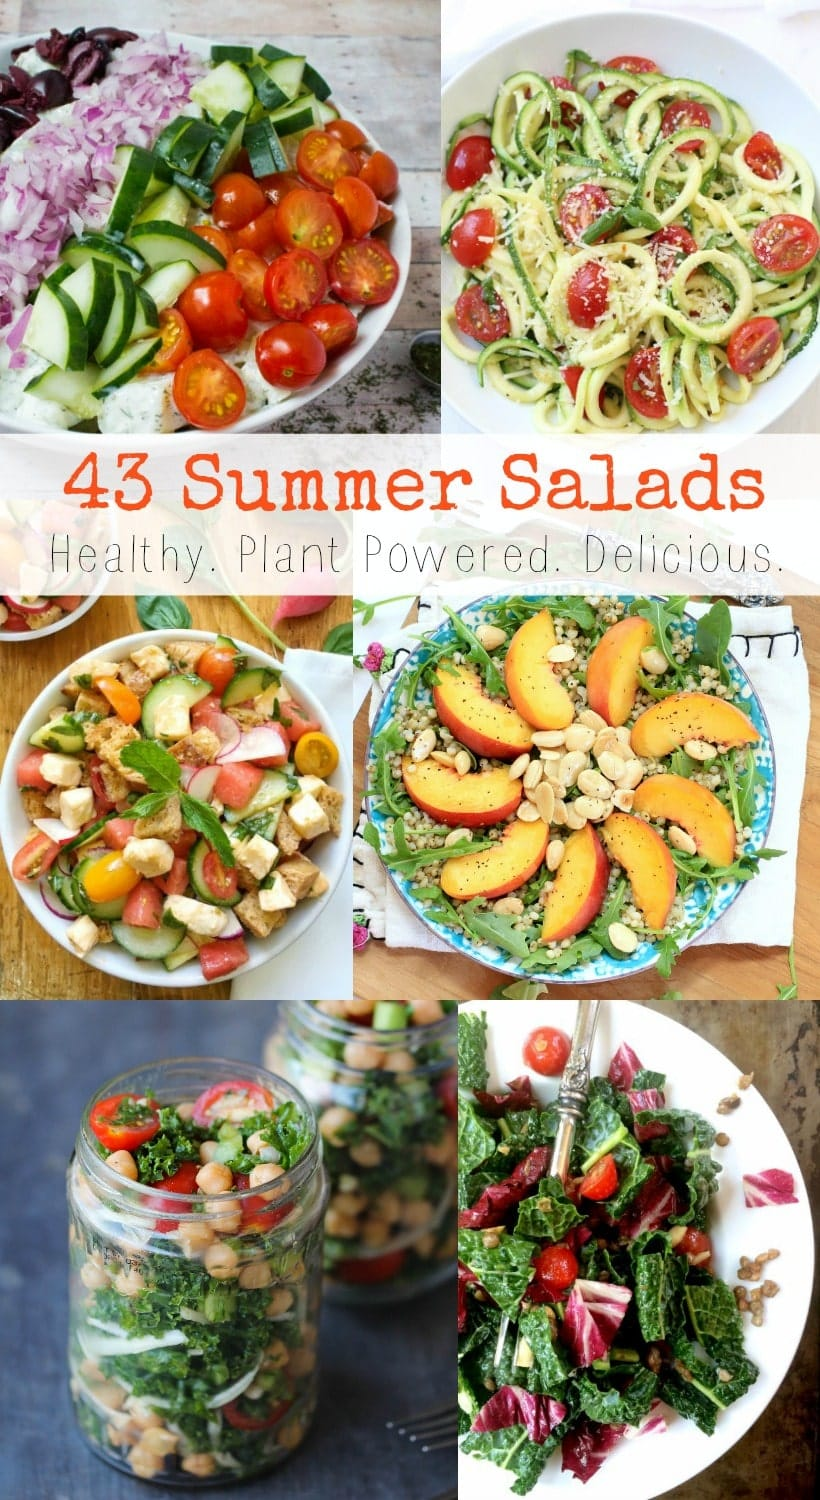 43 Healthy Summer Salads You Need To Eat Now